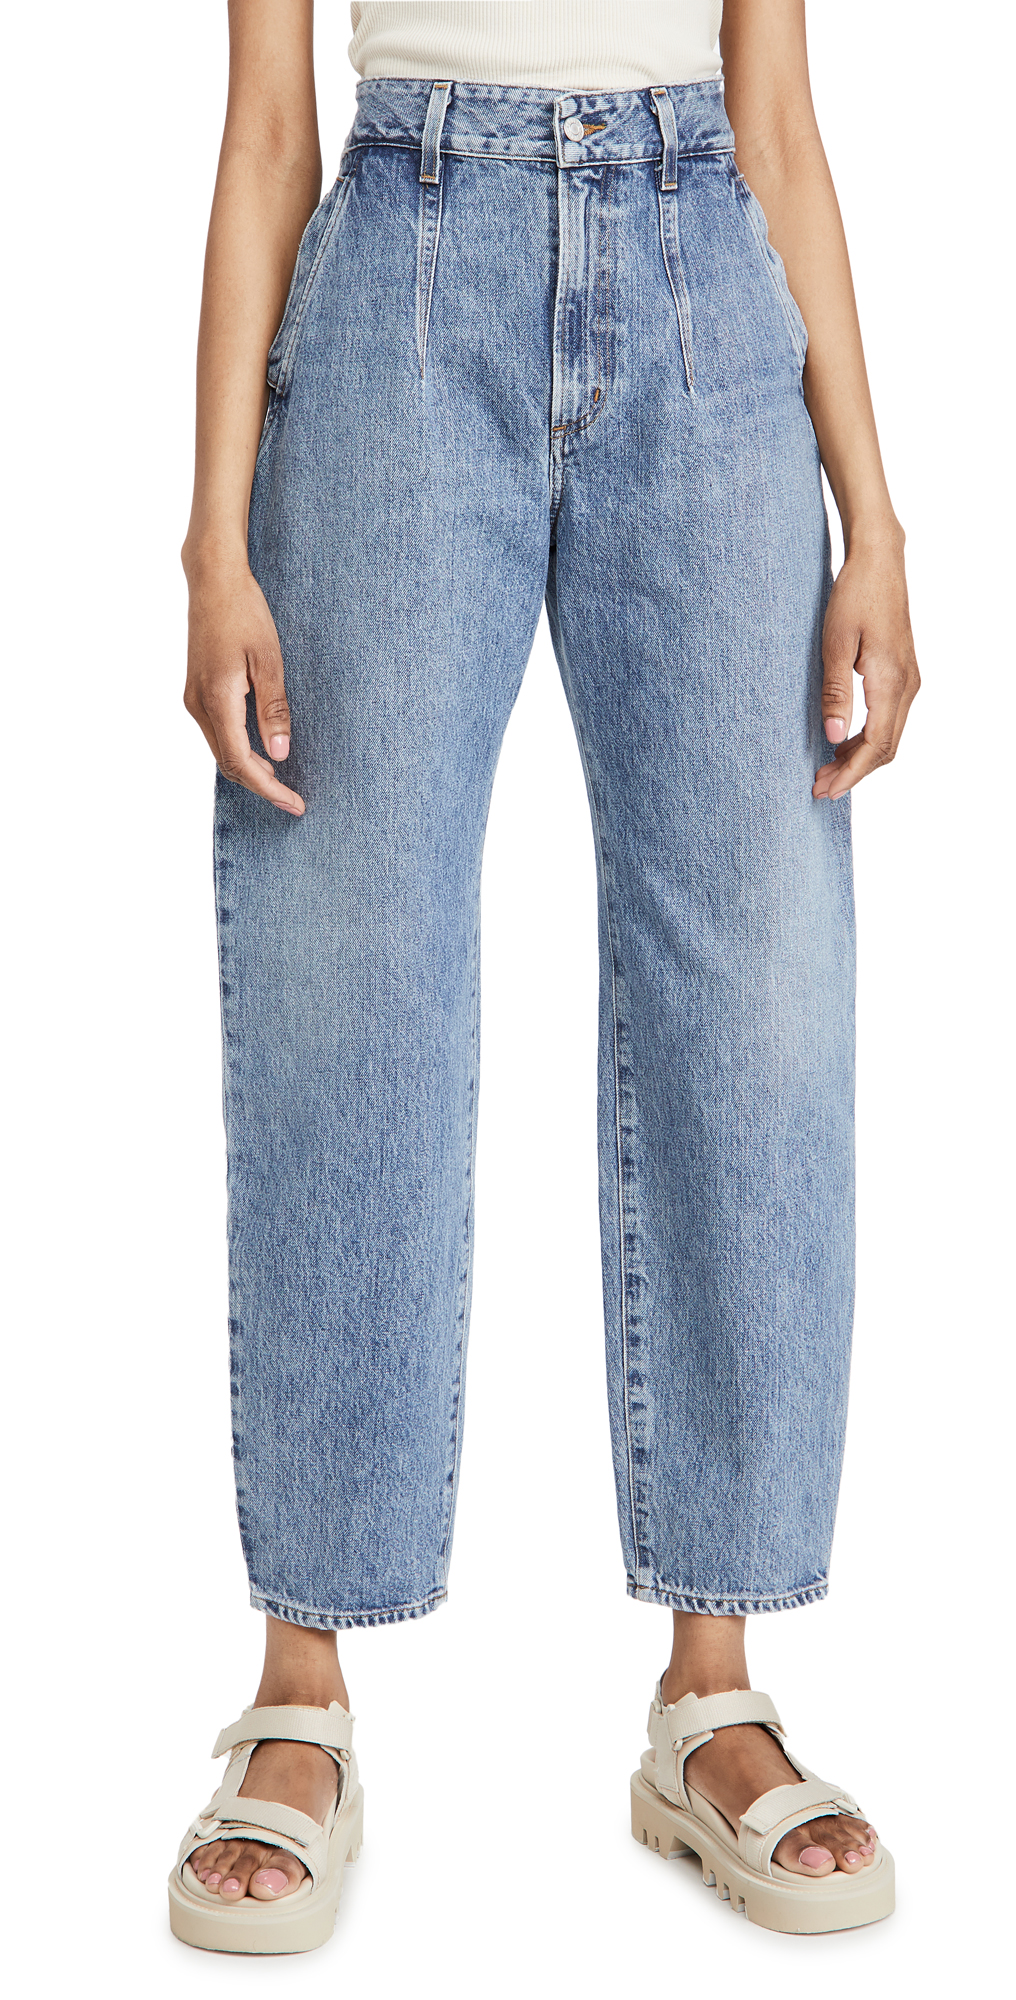 AGOLDE Darted Balloon Baggy Tapered Jeans